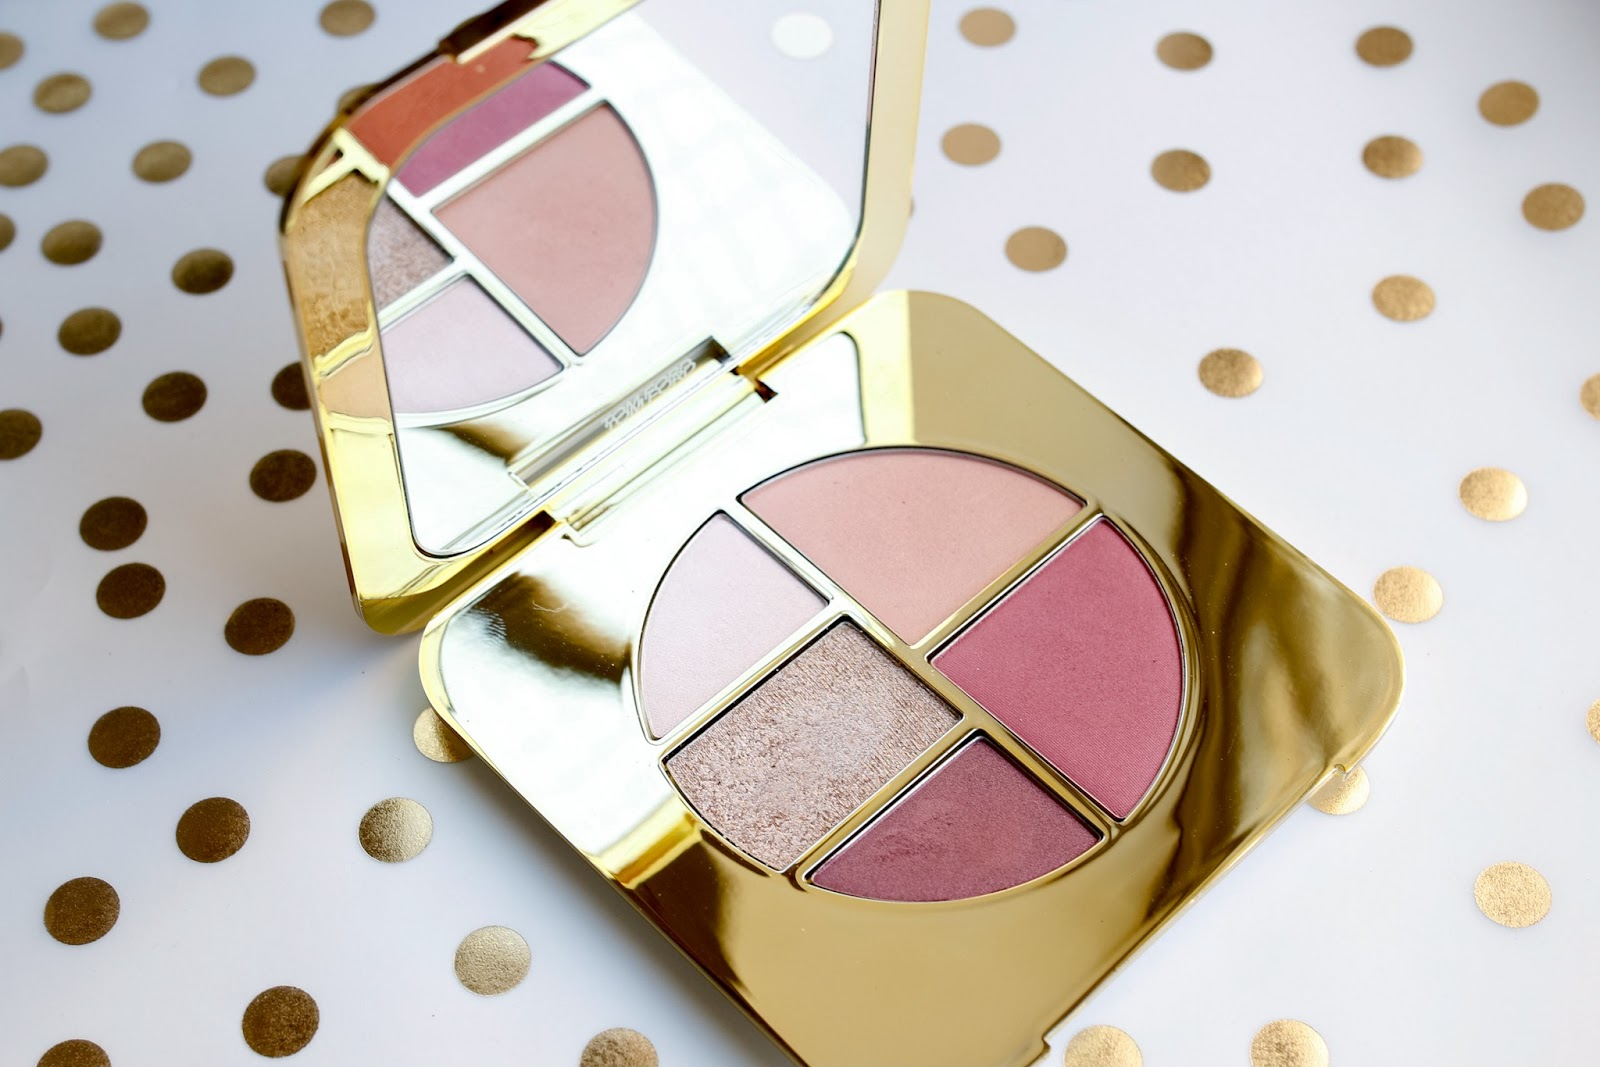 Tom Ford Summer 2015 Eye and Cheek Palette giveaway